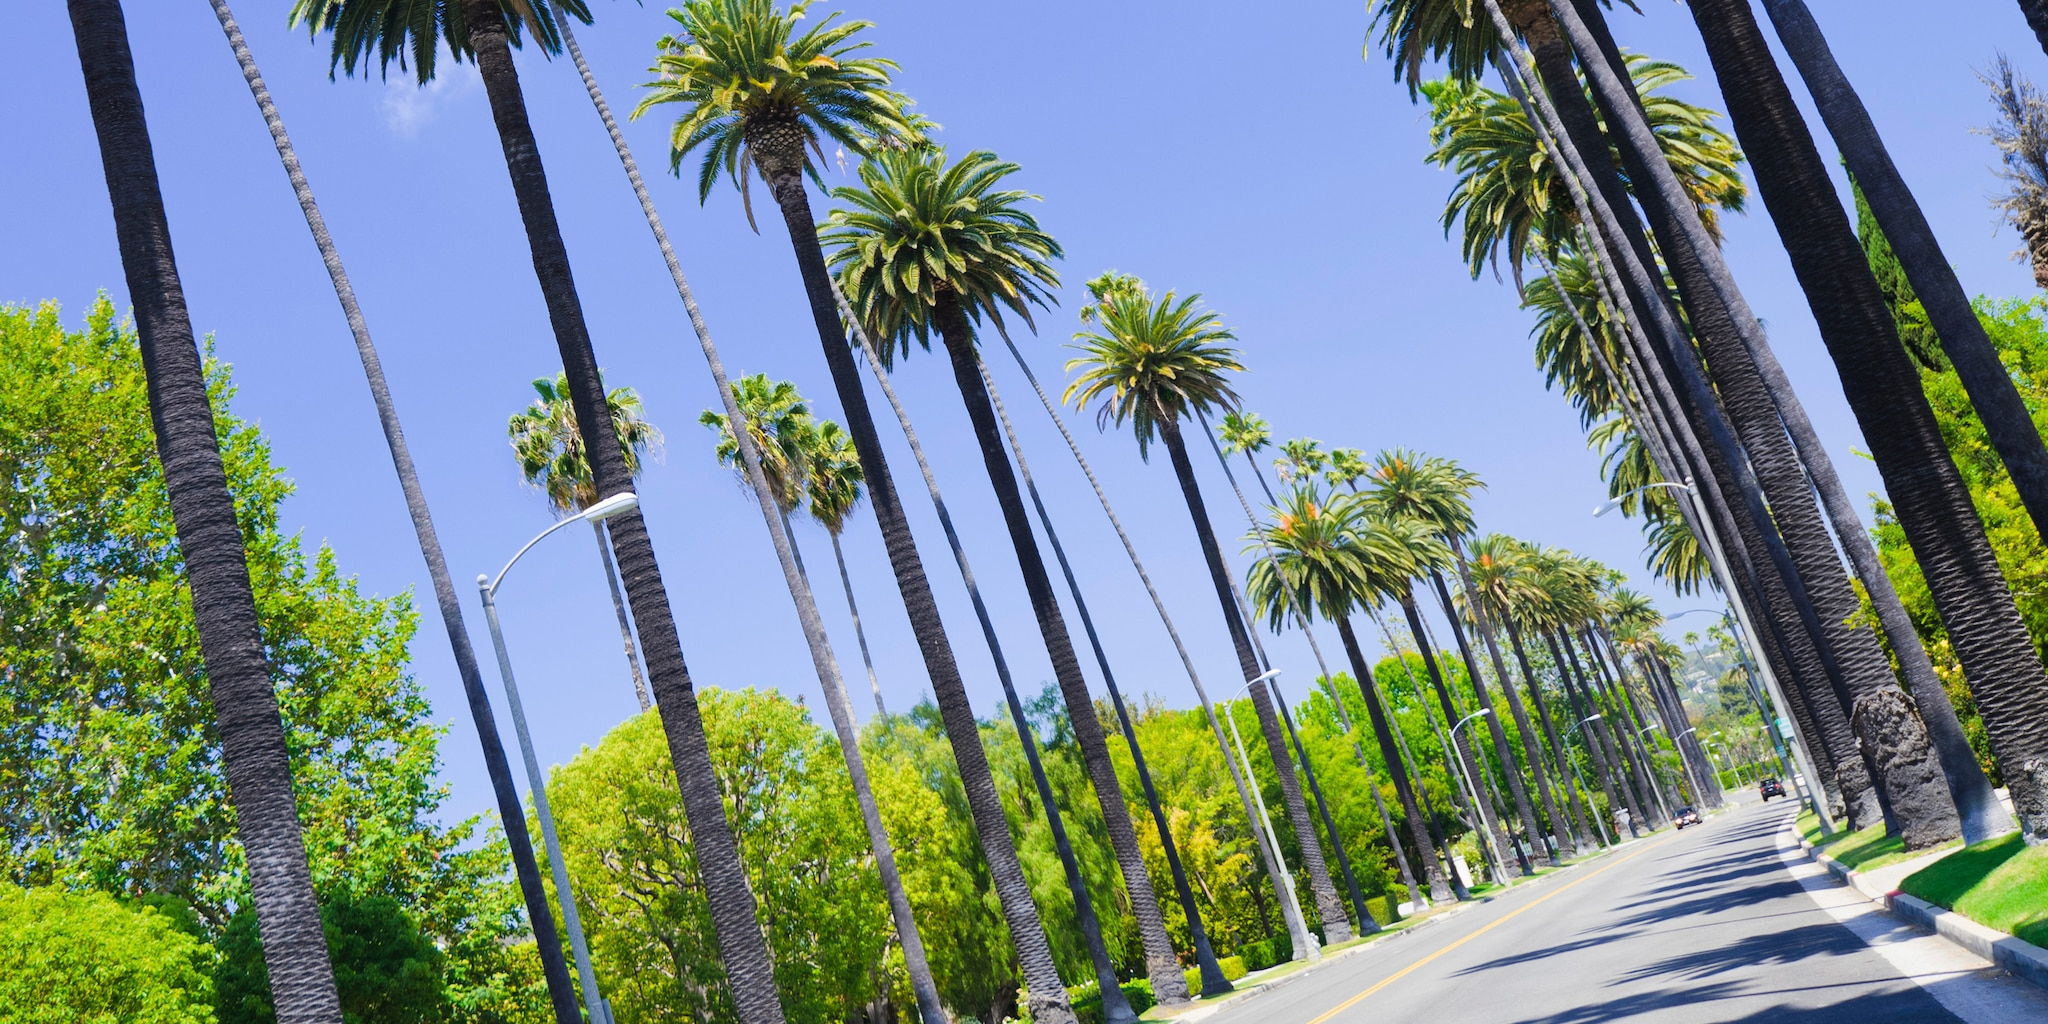 A palm tree-lined street in Los Angeles